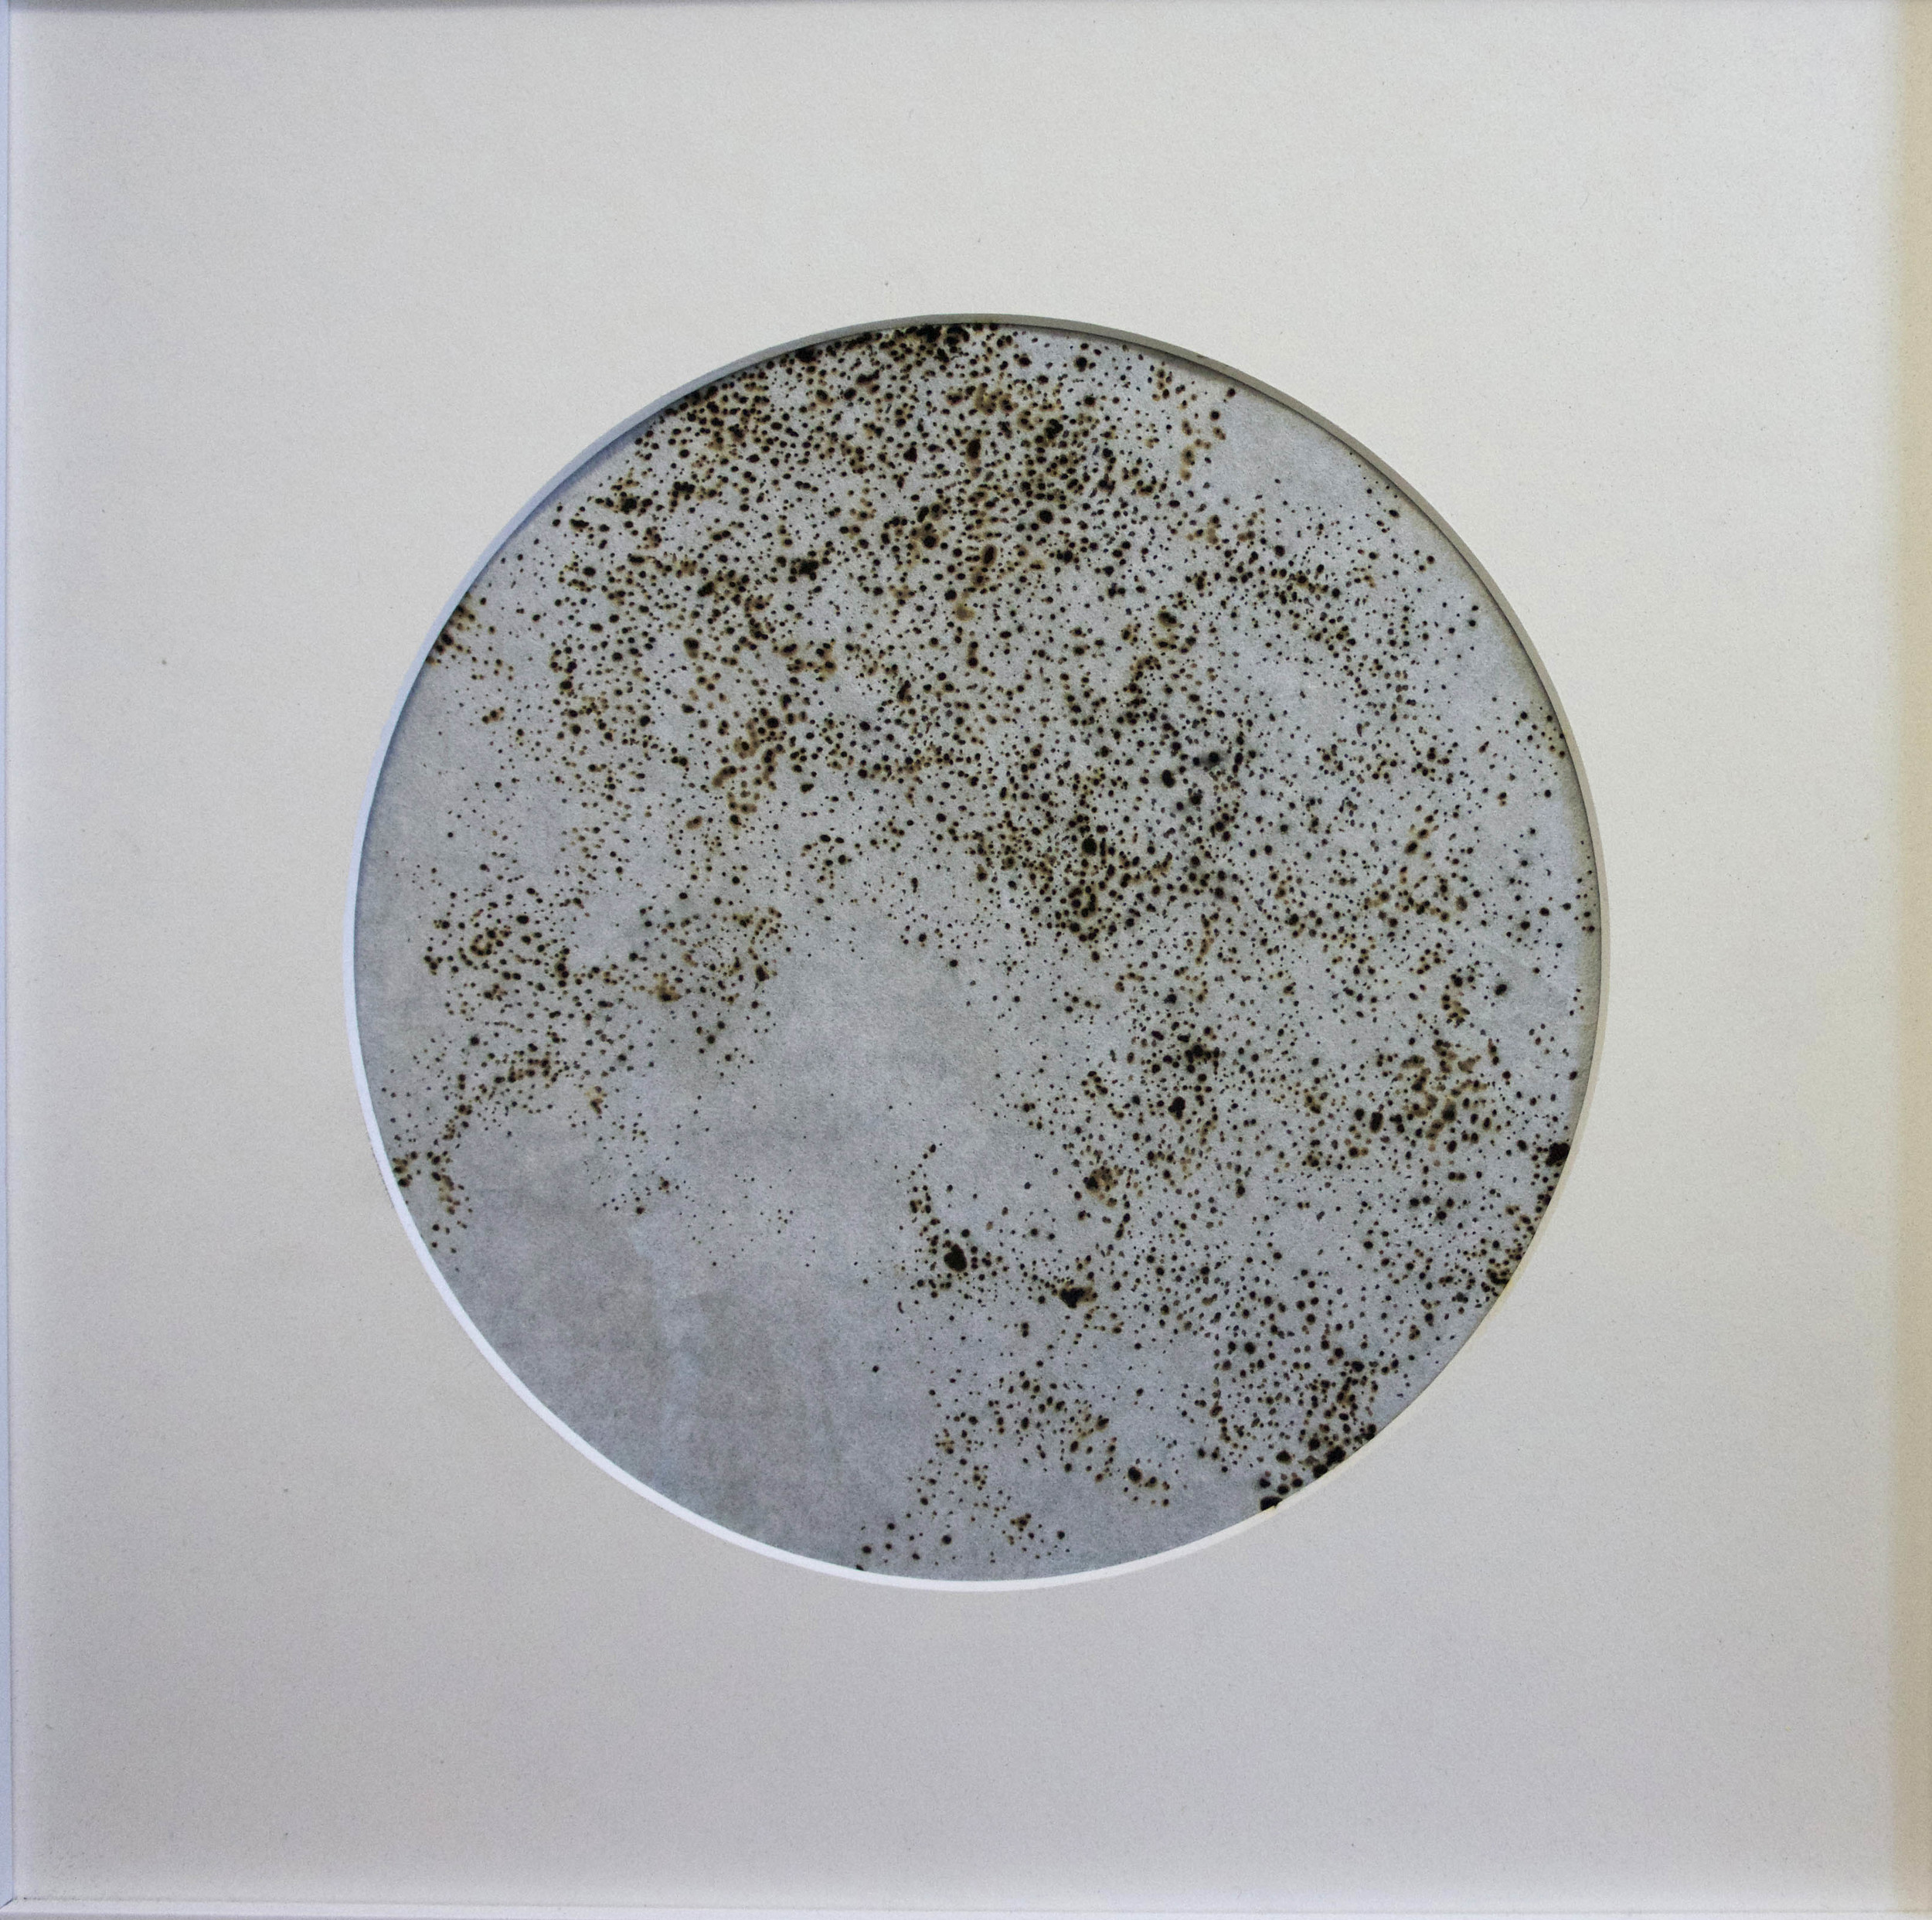 'Moon 1', burnt pricks into rice paper with black backing, 30 x 30 cm